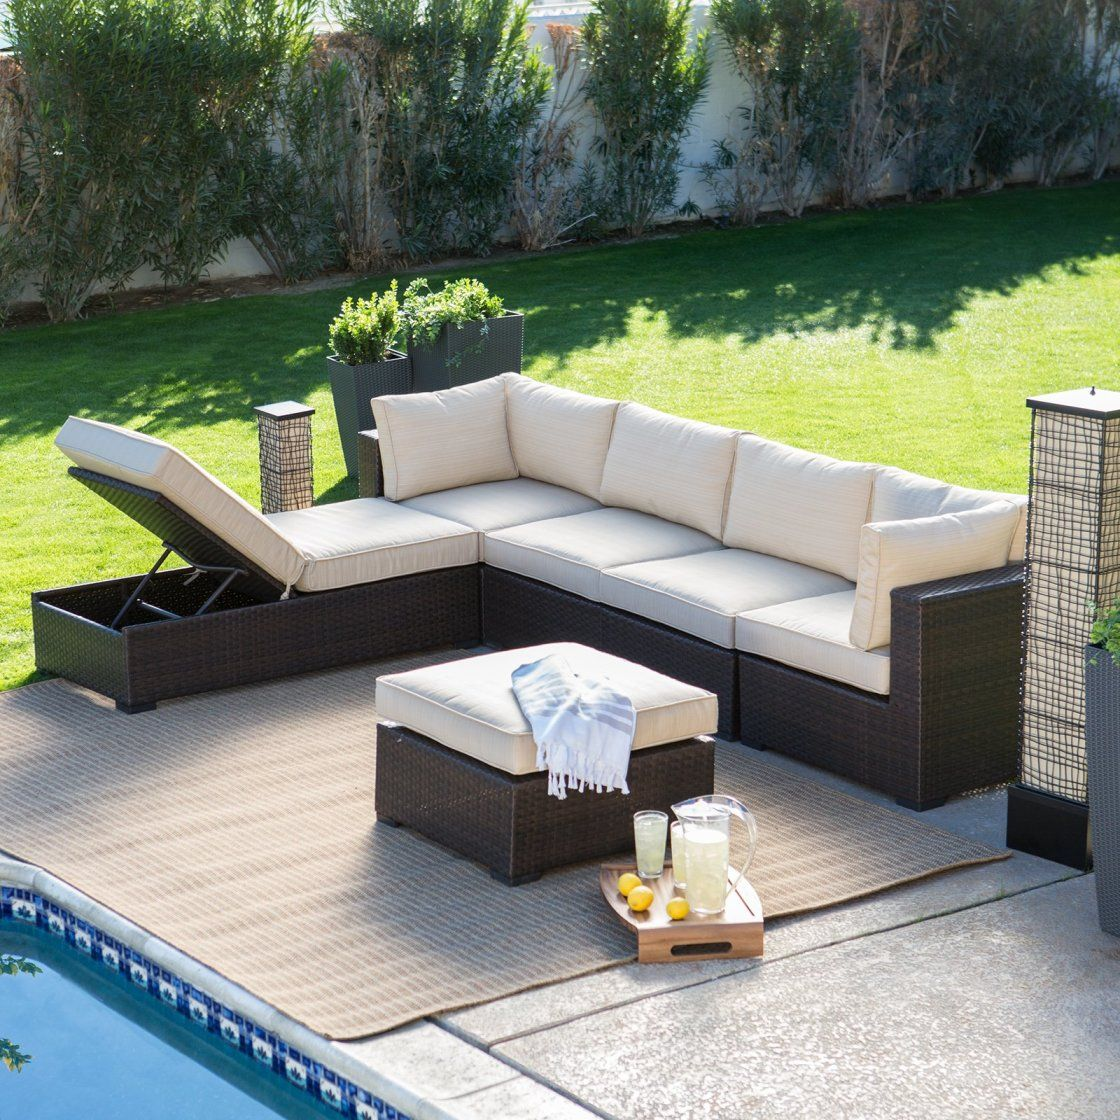 Endearing Inspiring Outdoor Sectional Sofa For Edge Garden Pool Using Synthetic W Diy Outdoor Furniture Plans Outdoor Furniture Plans Clearance Patio Furniture